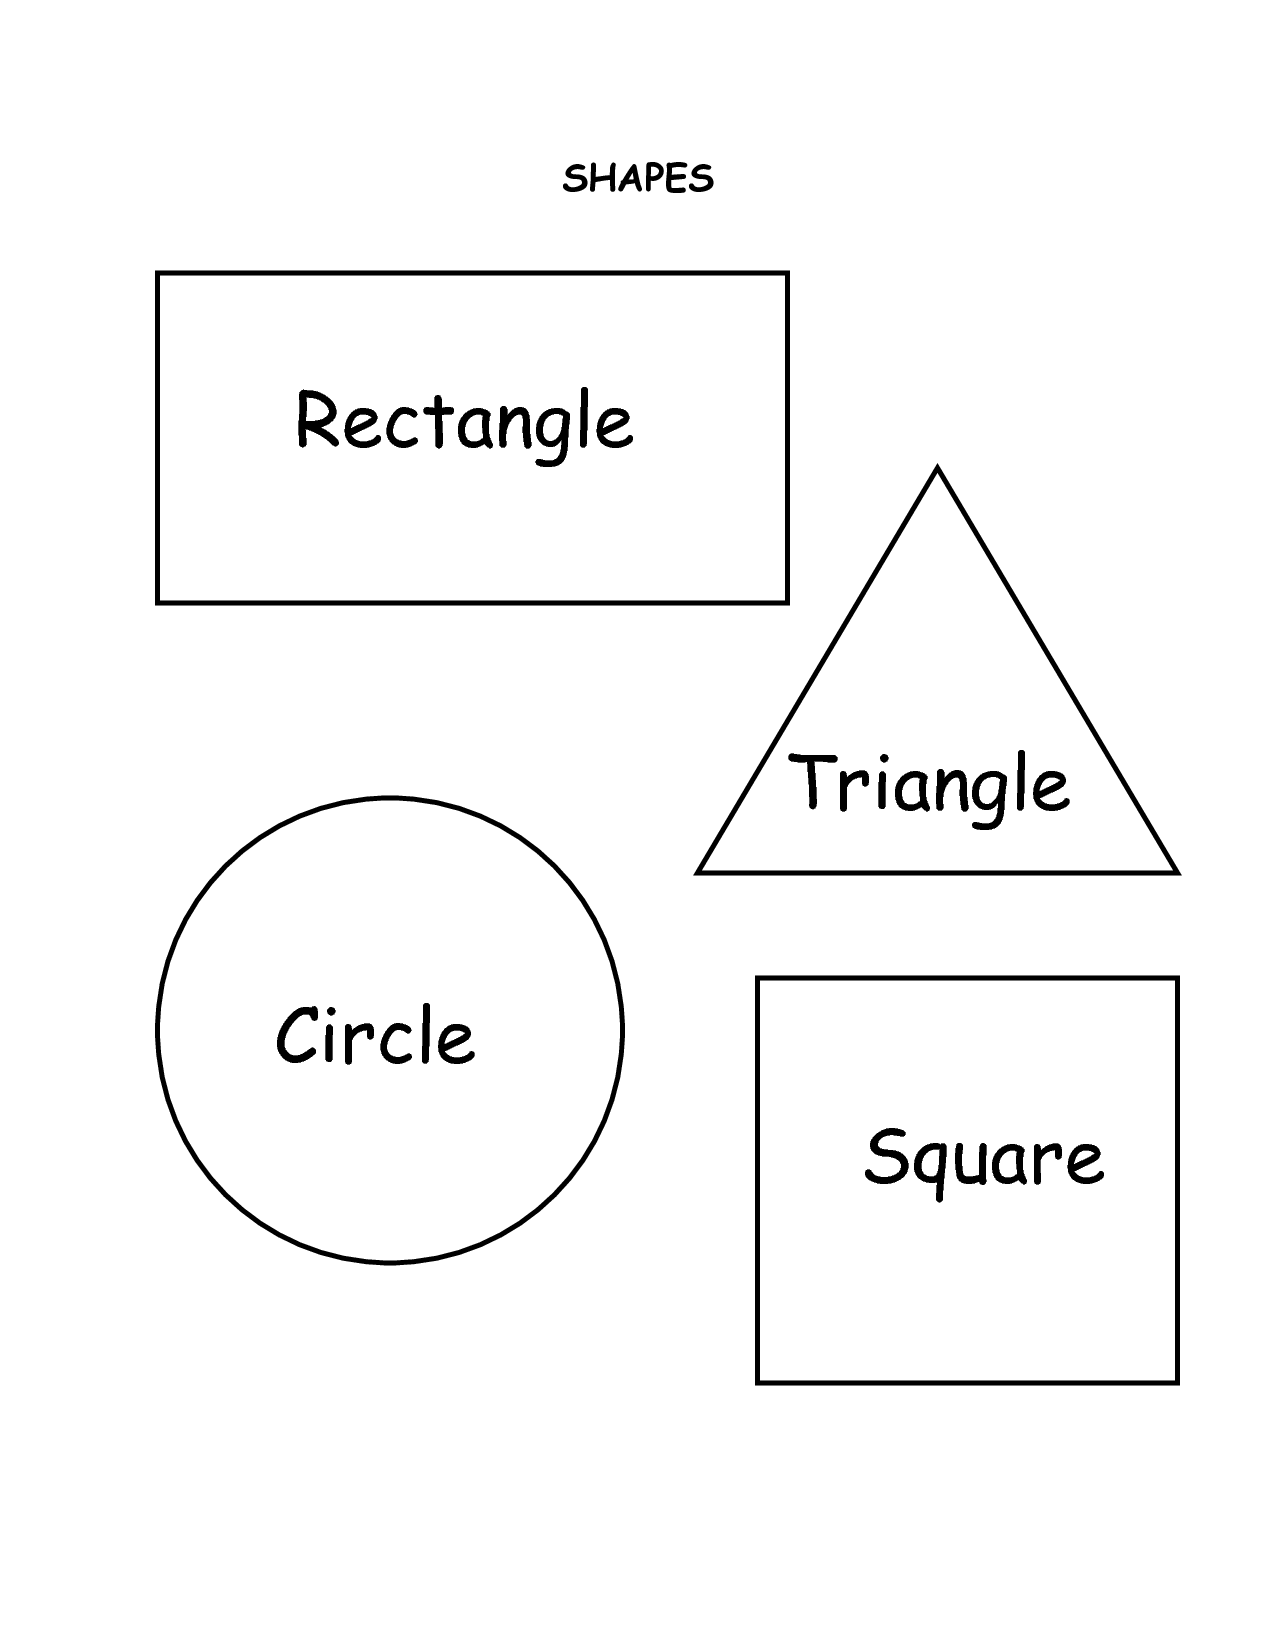 coloring pictures with shapes 12 shapes coloring pages circles squares triangles shapes pictures with coloring